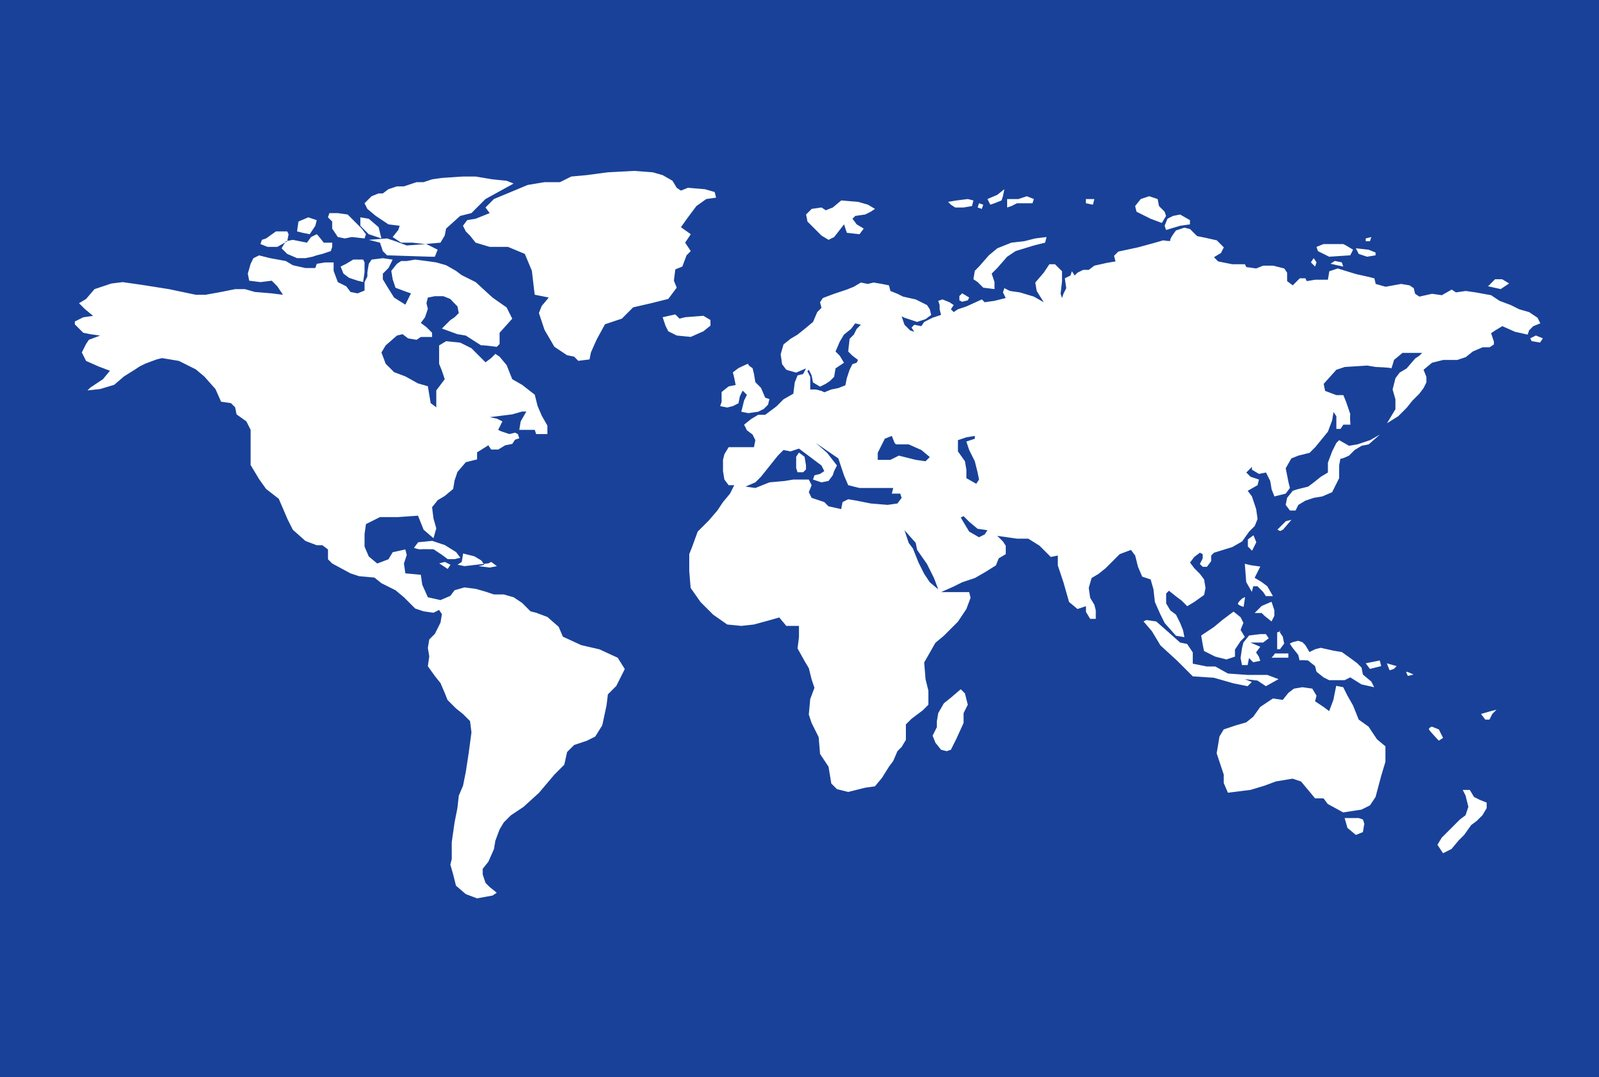 Free World Map Stock Photo - FreeImages.com